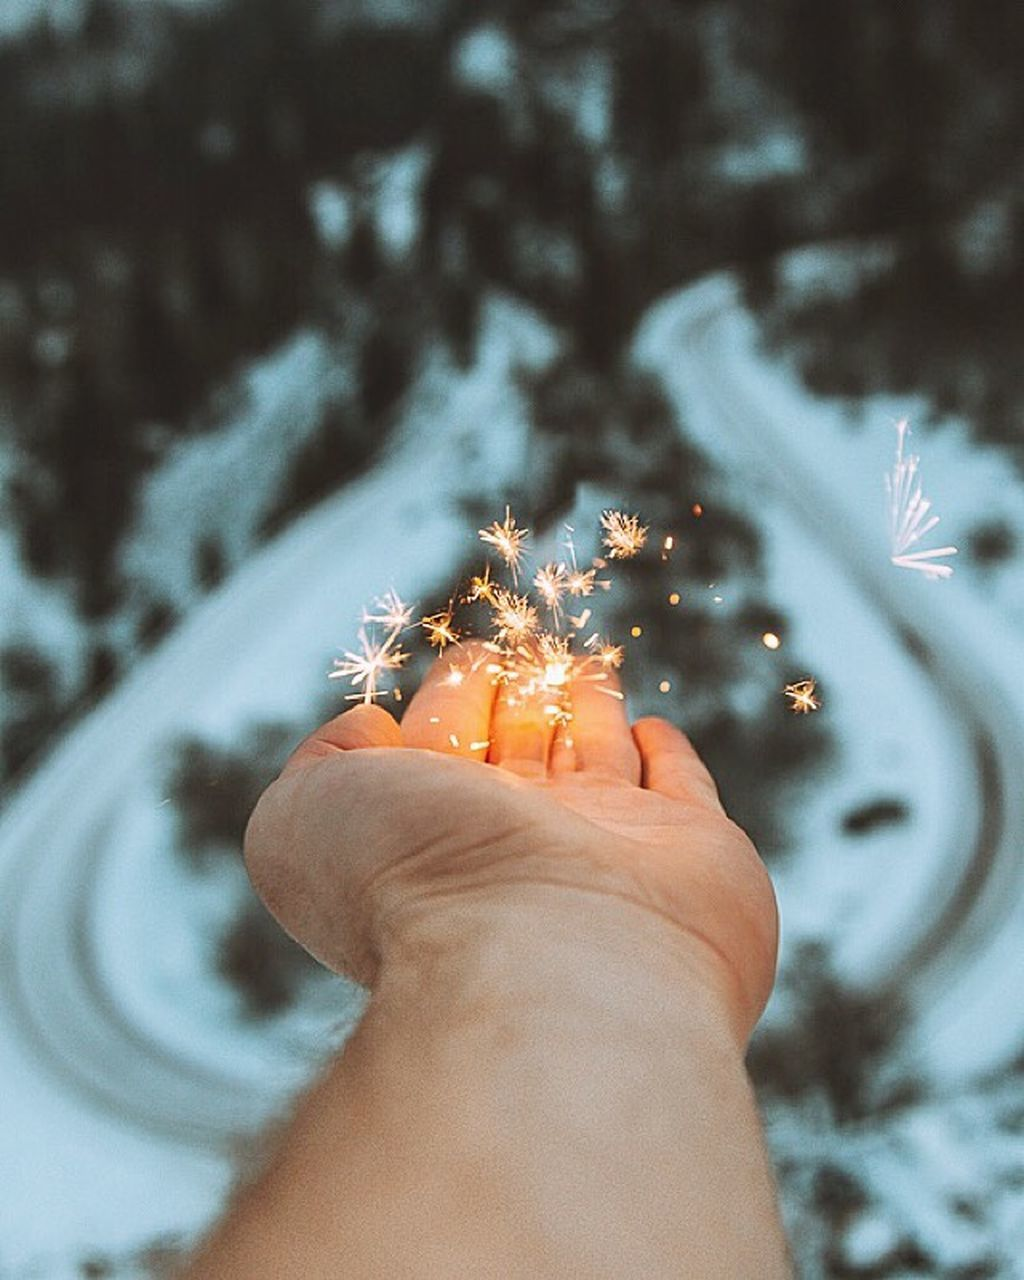 human hand, human body part, real people, one person, christmas decoration, holding, illuminated, personal perspective, tree, christmas, lifestyles, focus on foreground, sparkler, leisure activity, christmas tree, celebration, outdoors, close-up, night, snow, nature, snowflake, people